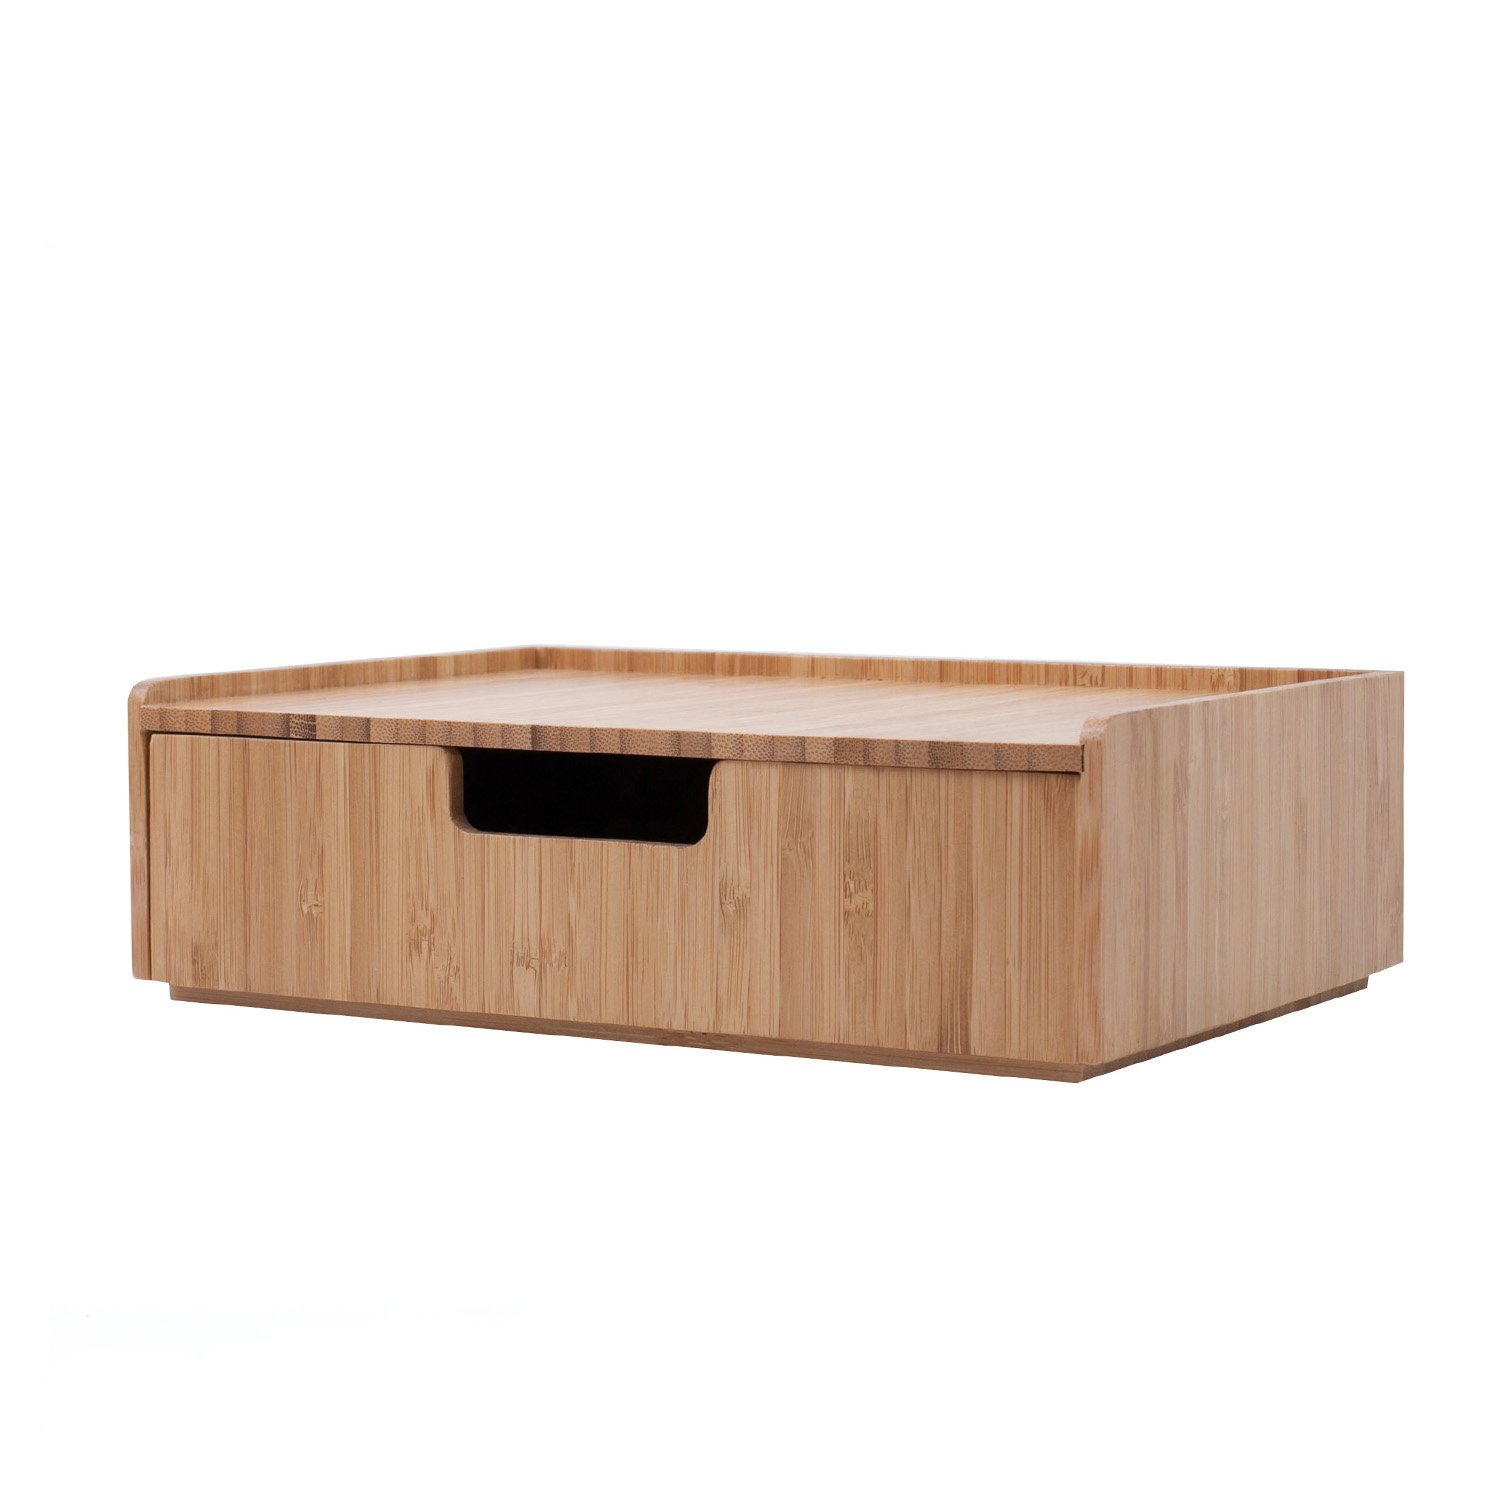 Bamboo Drawer, Stackable Storage Solution for Office Products pens, Pencils, Scissors, notepads, Business Cards and More